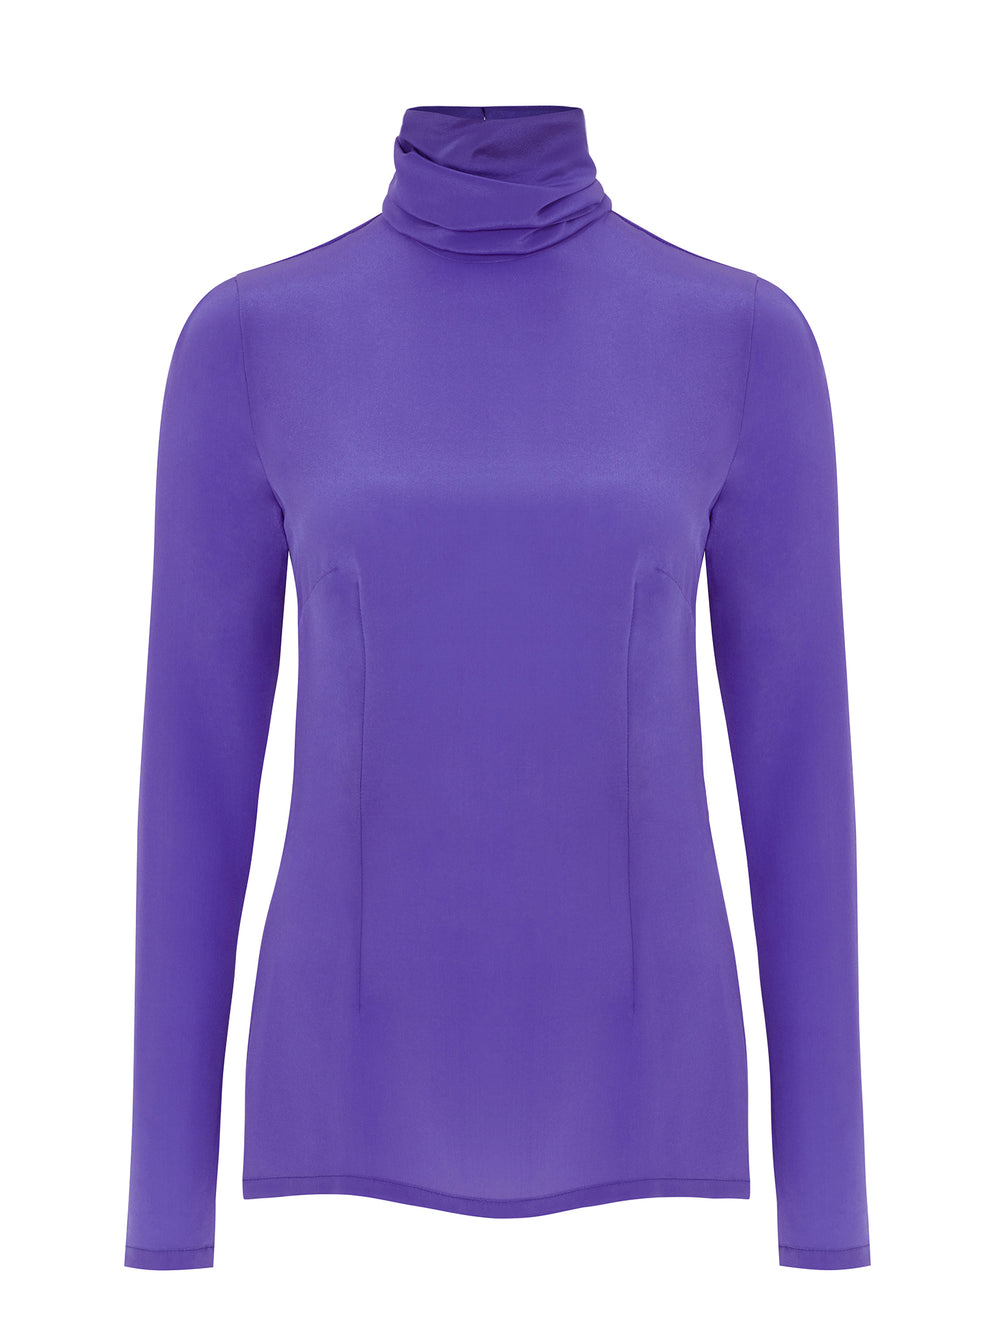 B055_ASPEN_Polo-Neck Blouse